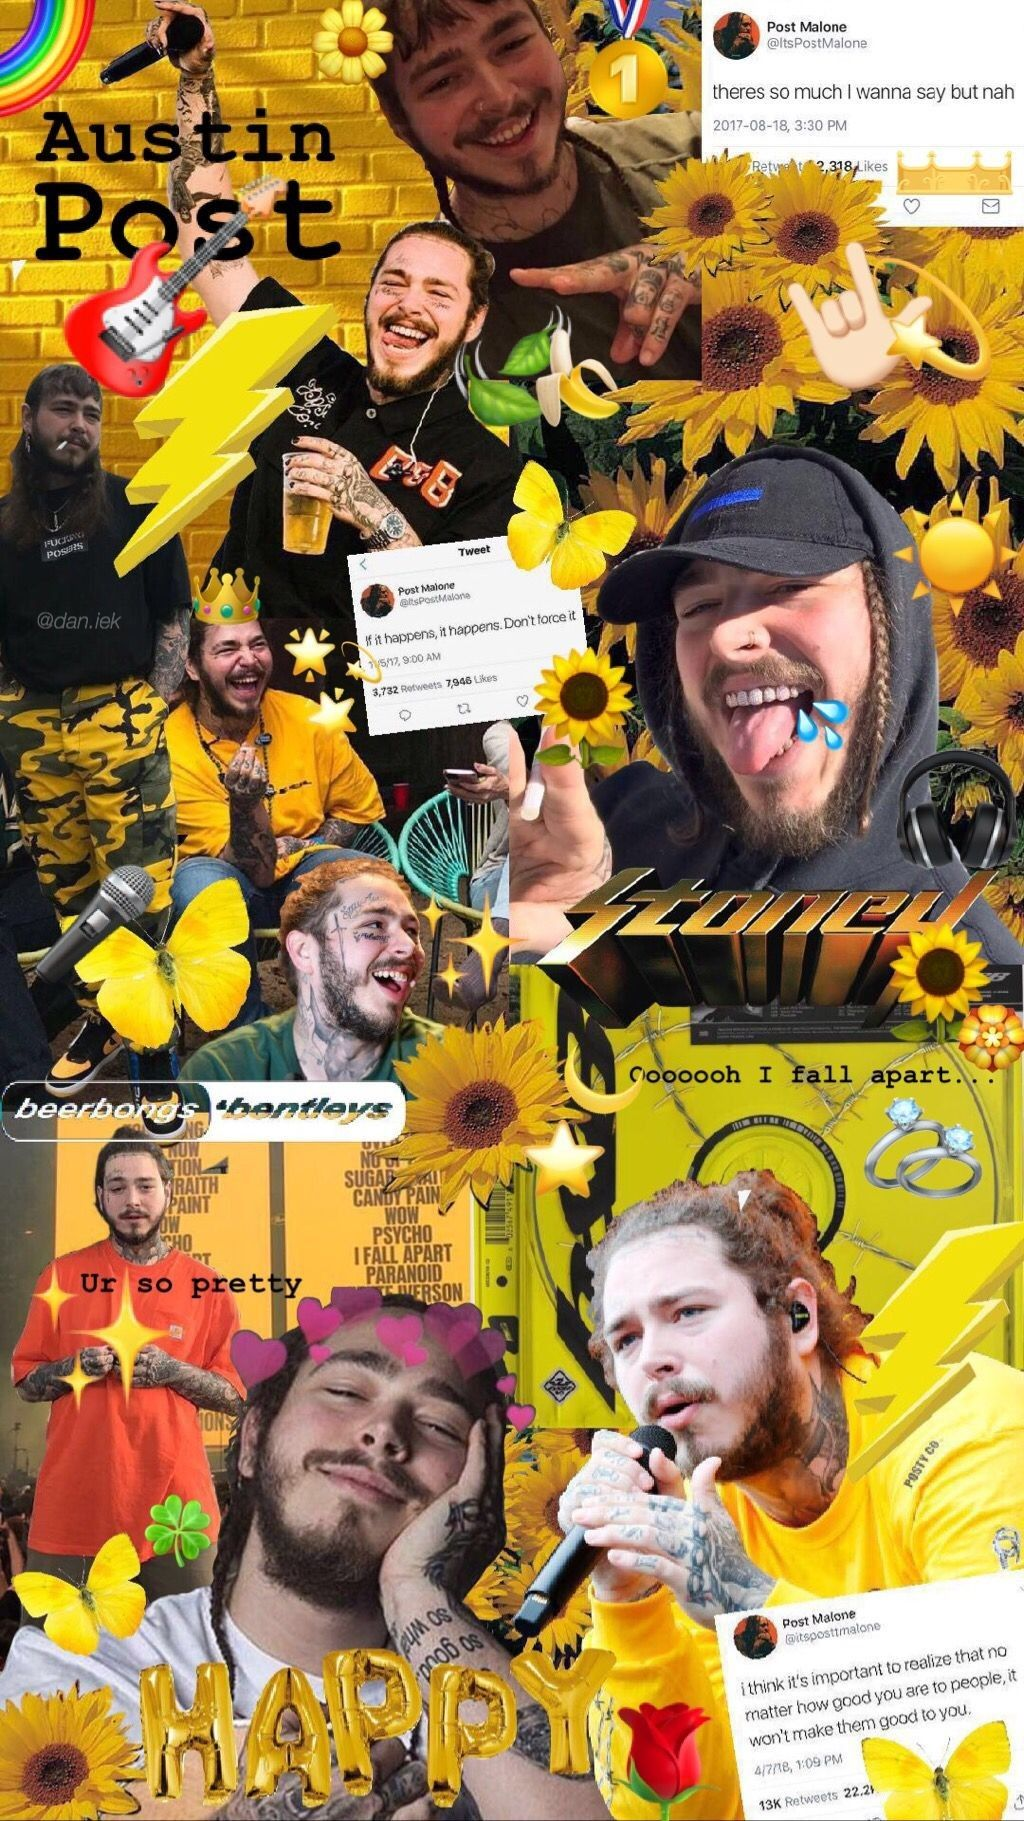 Pin by 🖤𝖖𝖚𝖊𝖊𝖓🖤 on •post malone• in 2020 Post malone